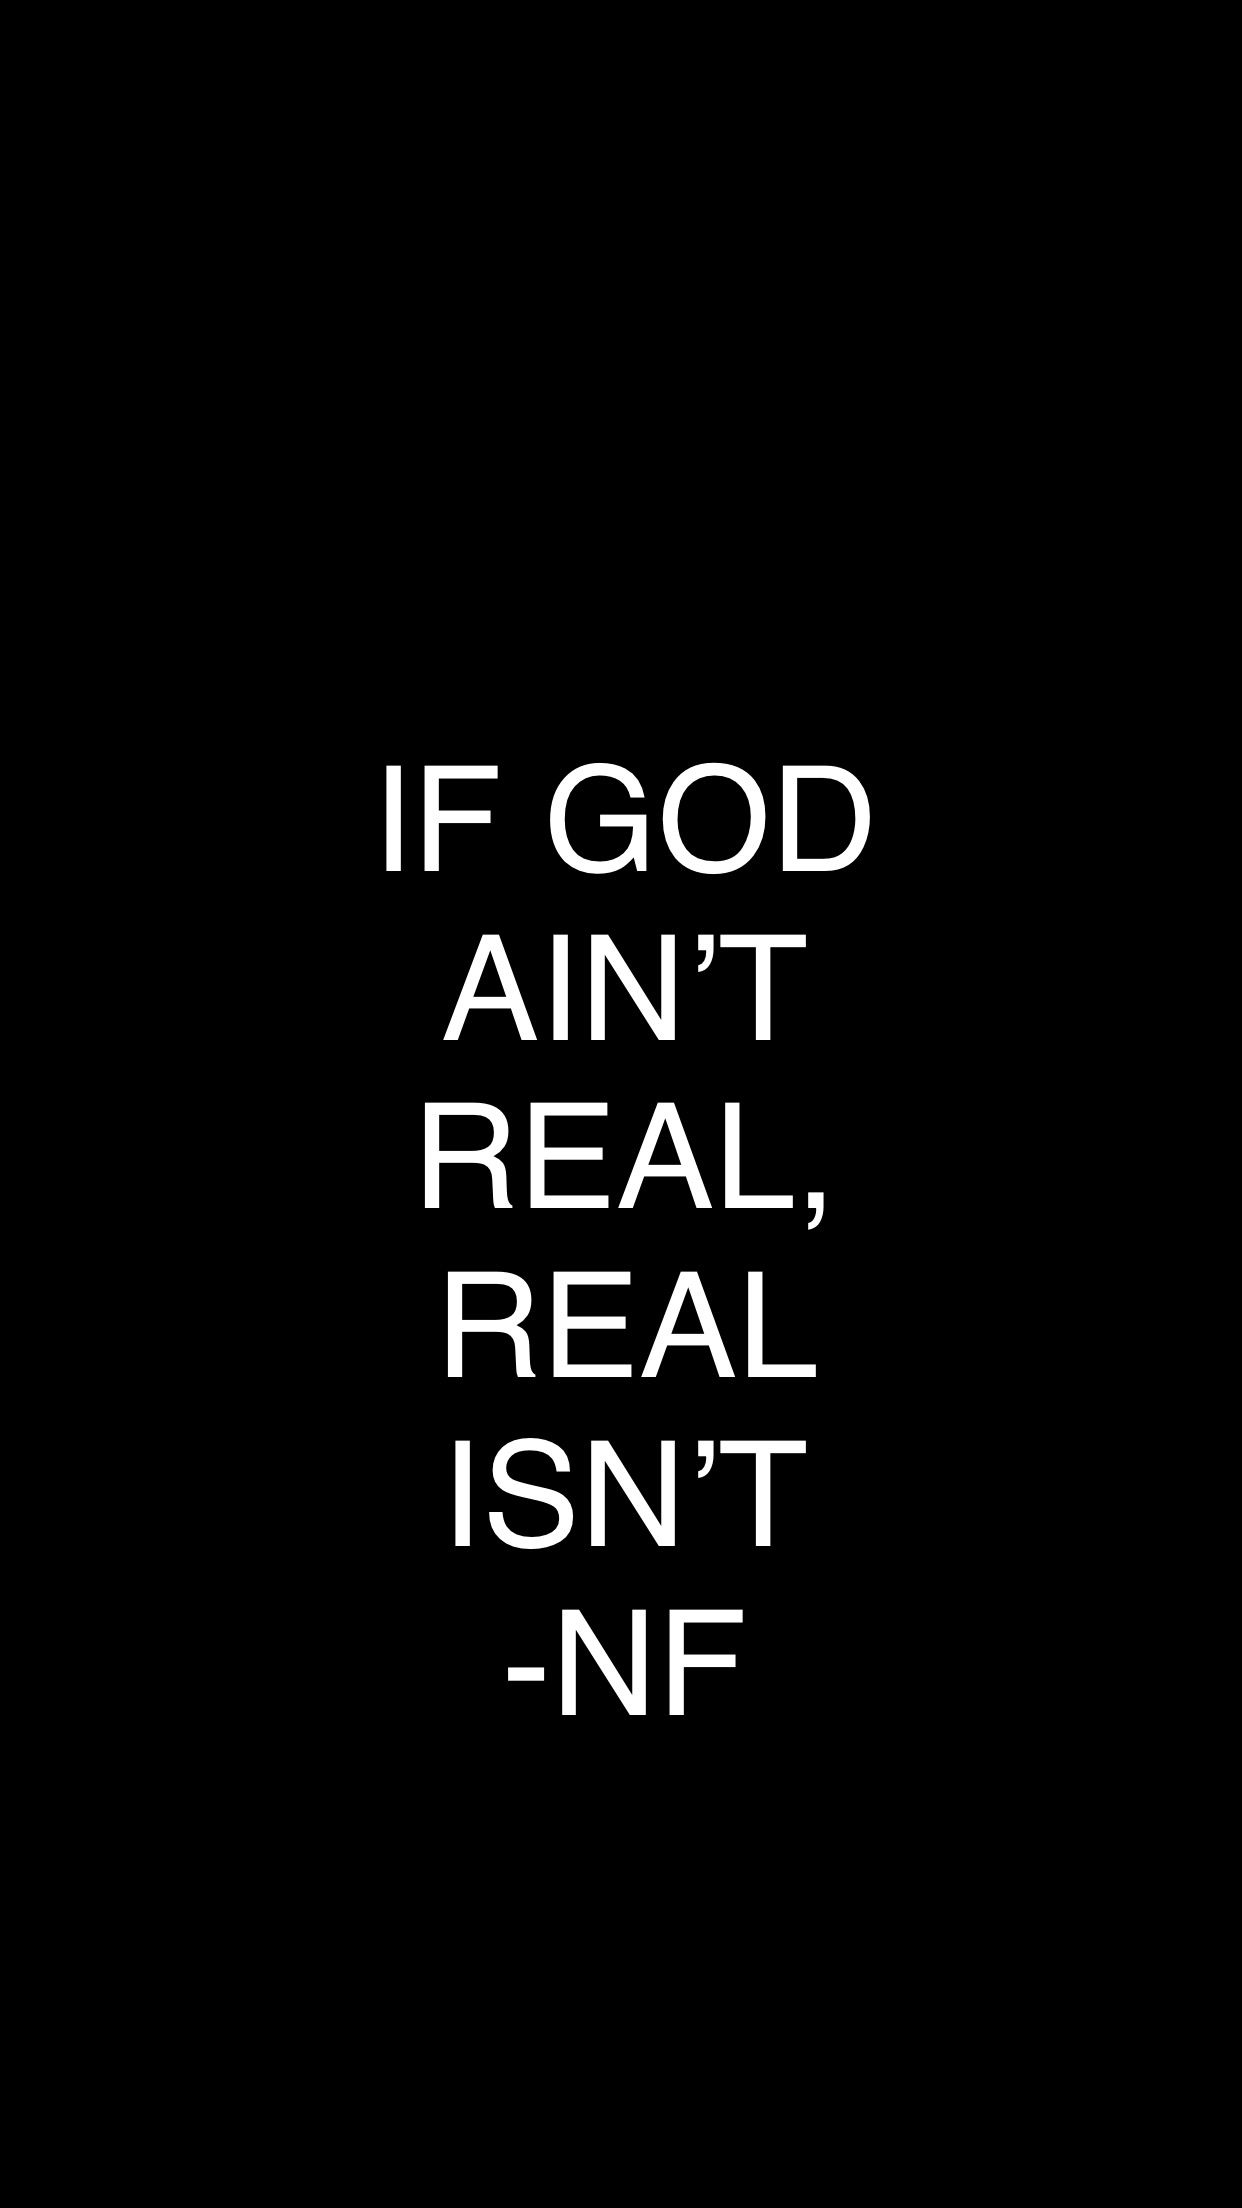 Nf Wallpaper I Made Nf Quotes Nf Lyrics Nf Real Music